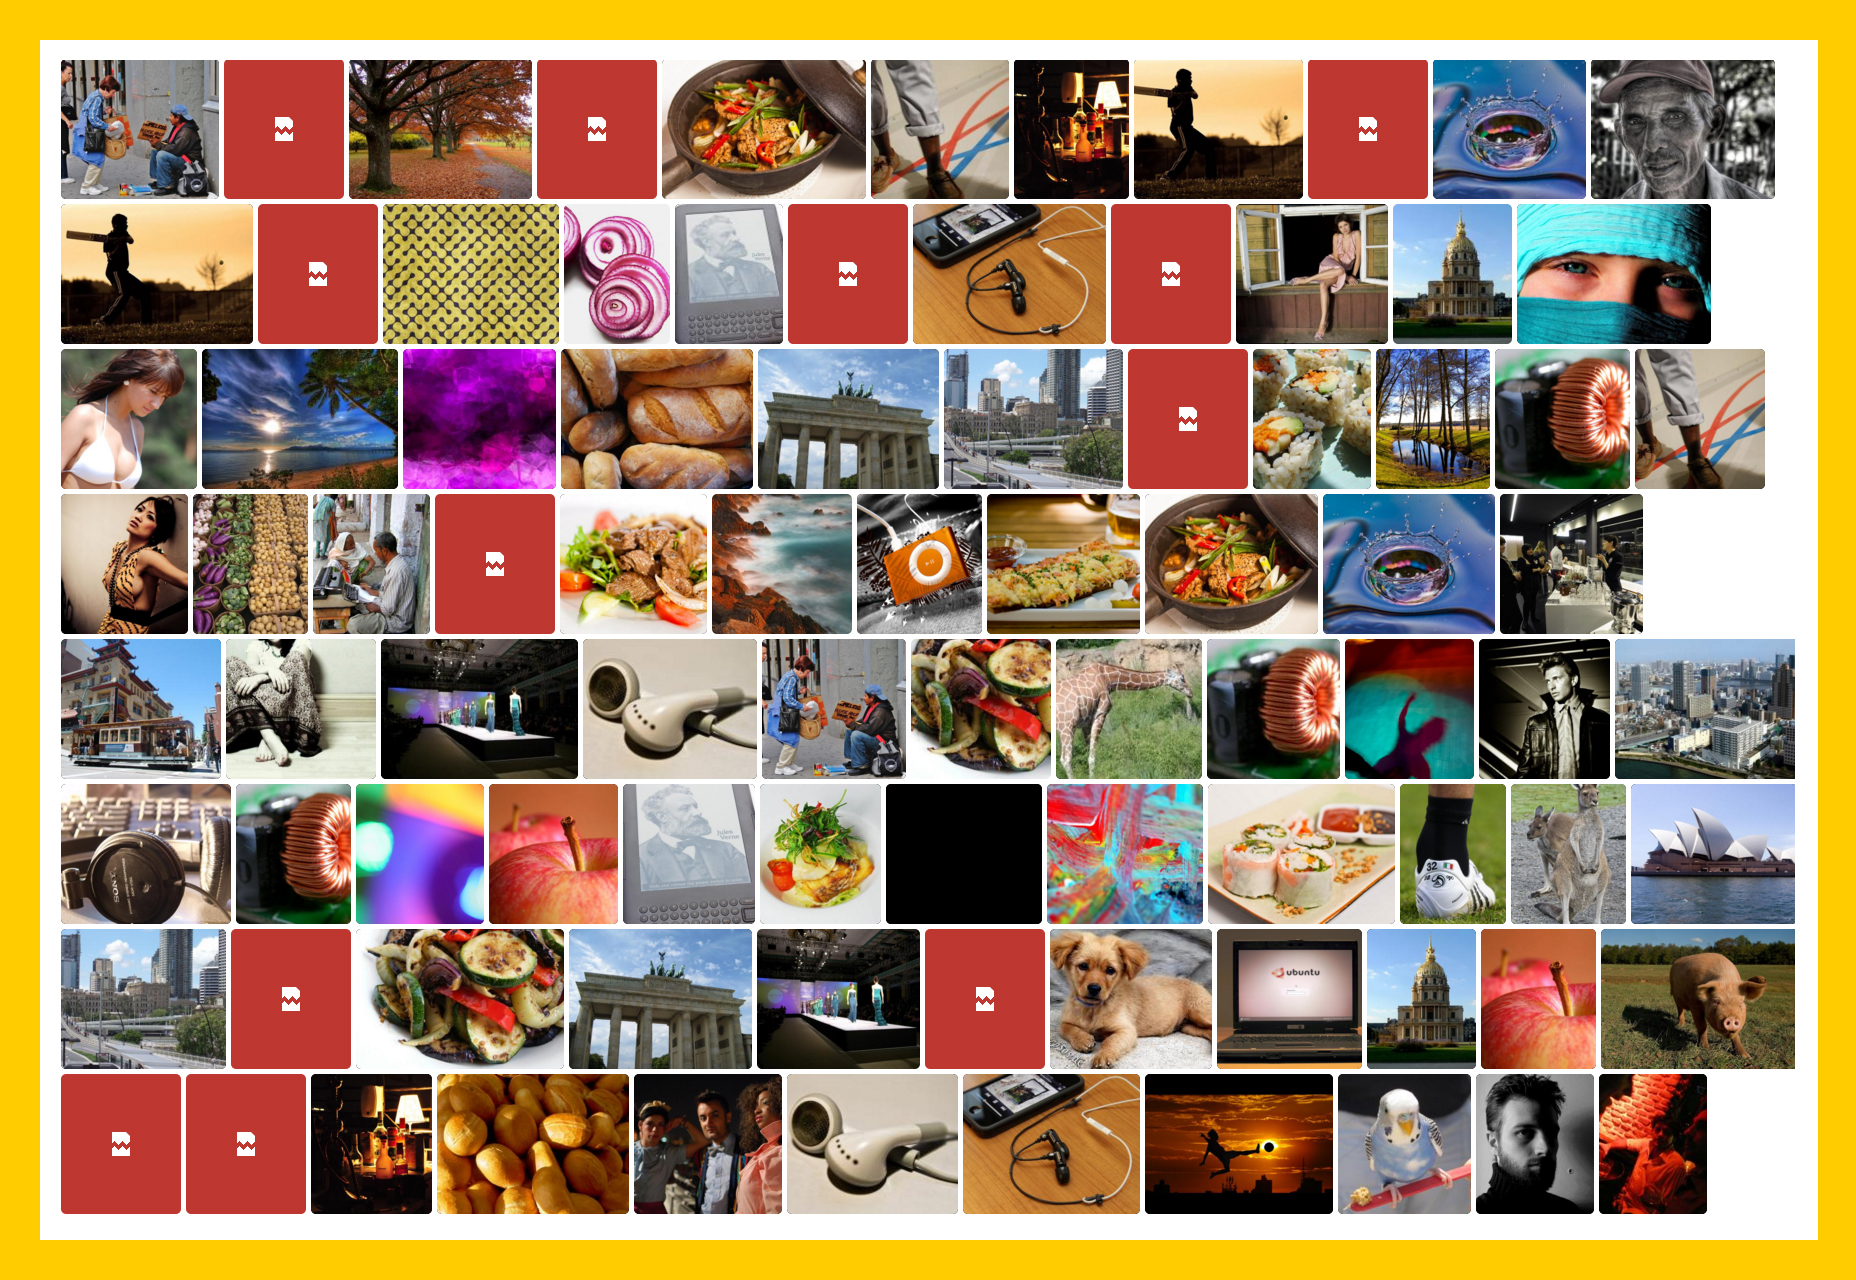 ImagesLoaded: JavaScript Image Load Consultor Library